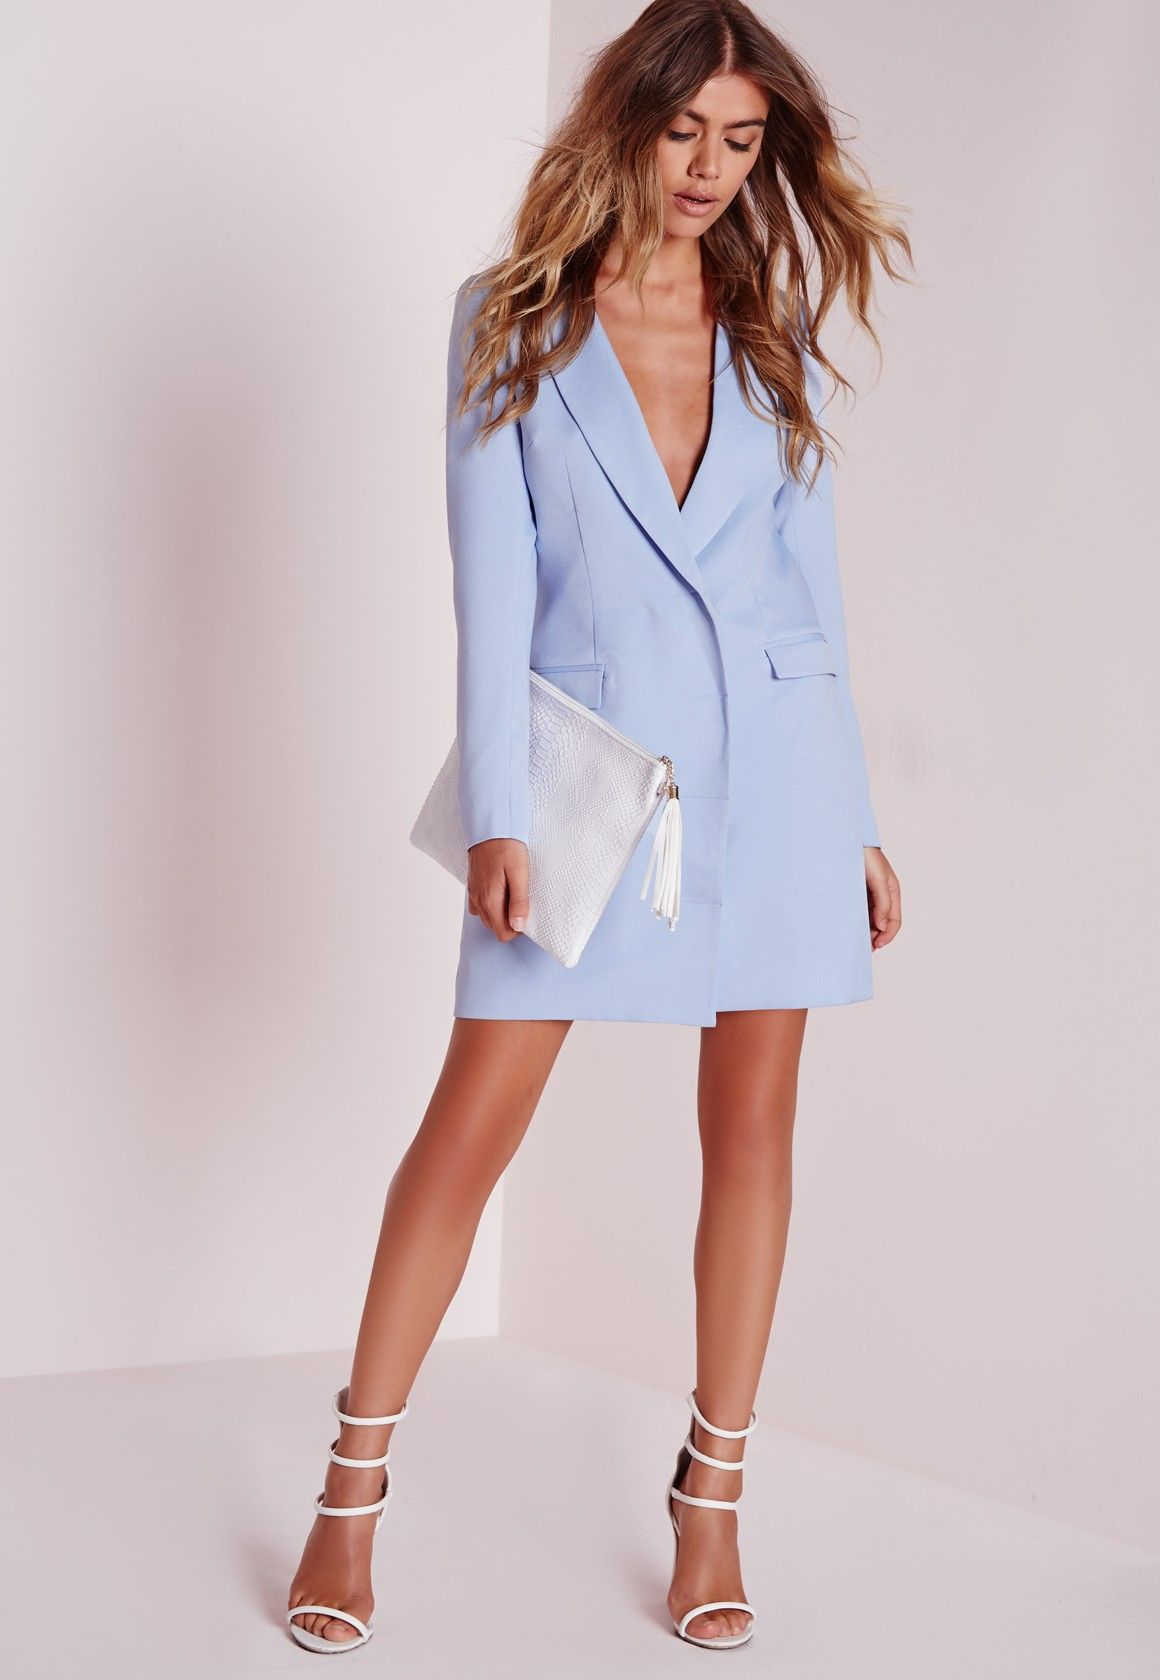 d136d59445b missguided long sleeve blazer dress blue